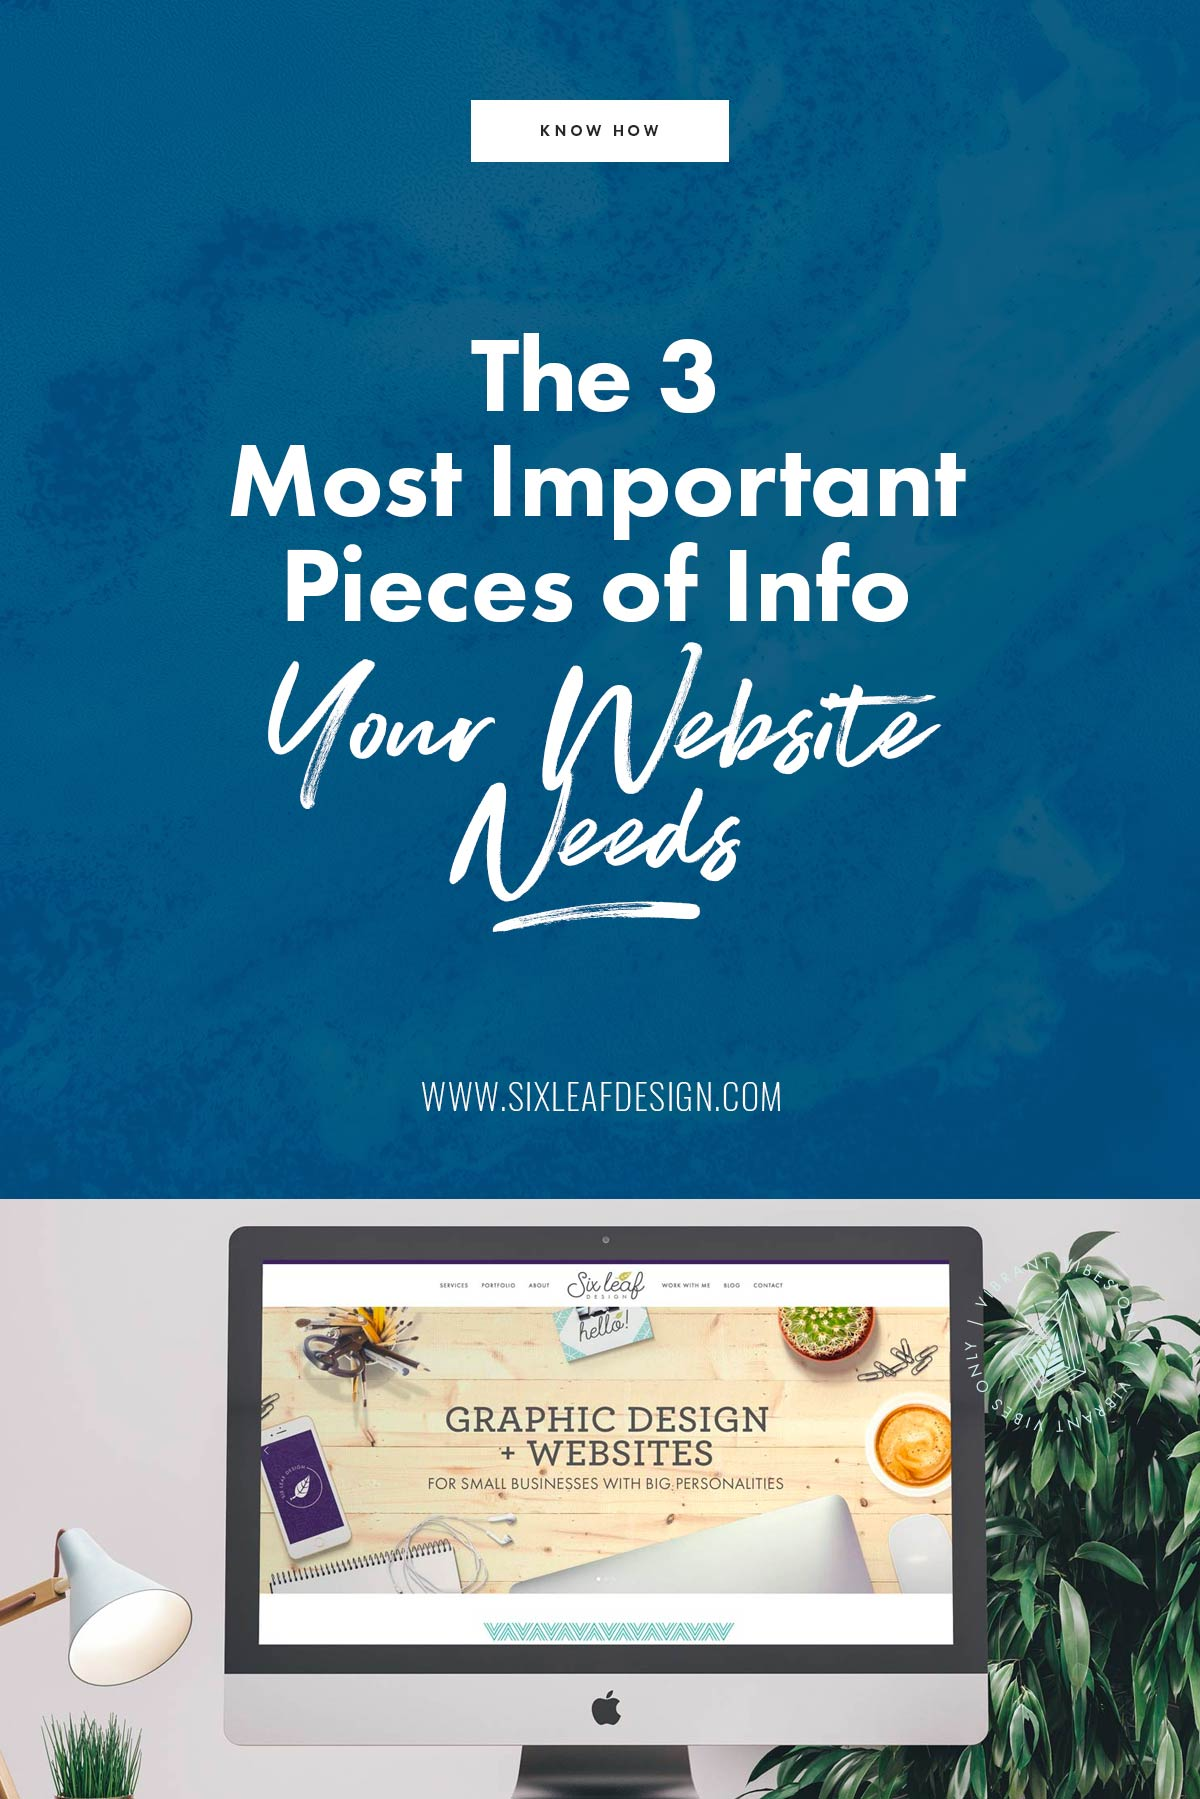 The 3 Most Important Pieces of Information Your Website Needs